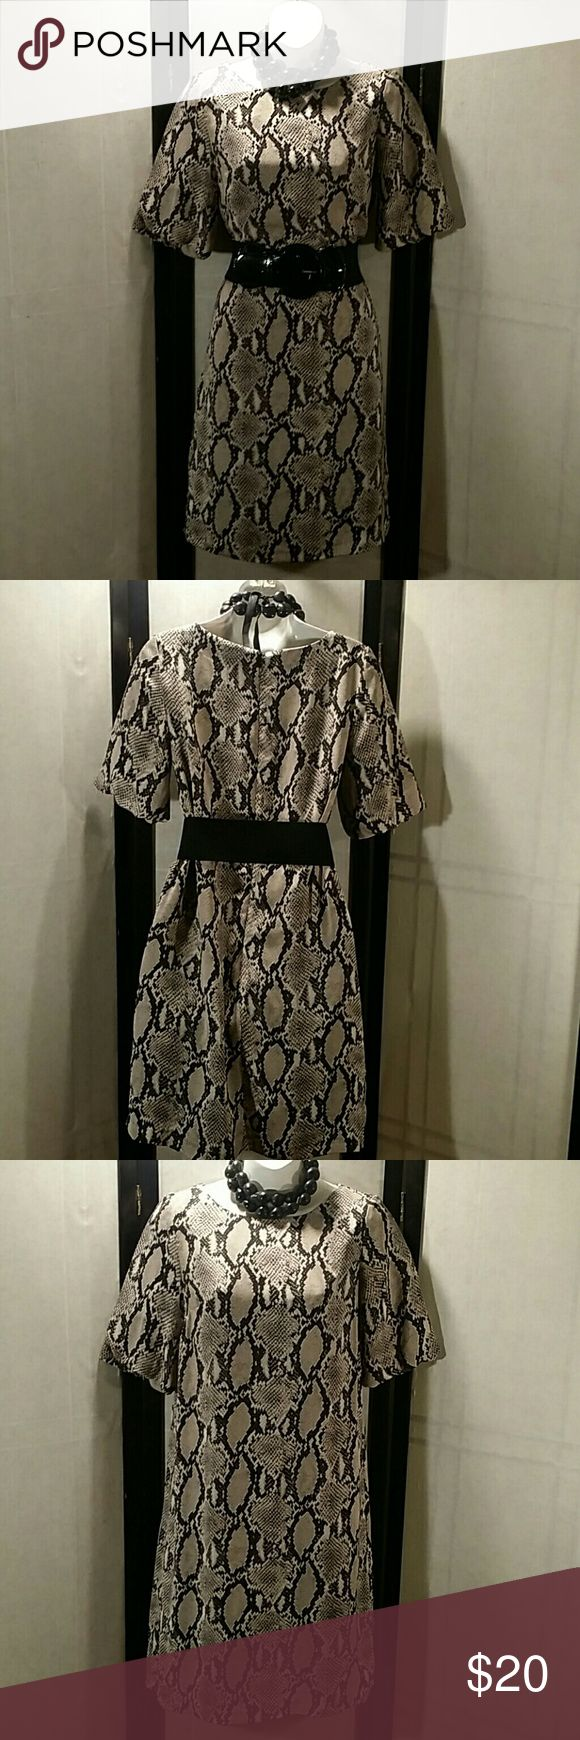 NWOT * Tunic Dress * Petite Beautiful * Black Multicolor * Animal Print *  Above Knee * 3/4 Sleeve * Belt and Necklace Not Included * Polyester * Bundle and Save * Focus 2000 Dresses